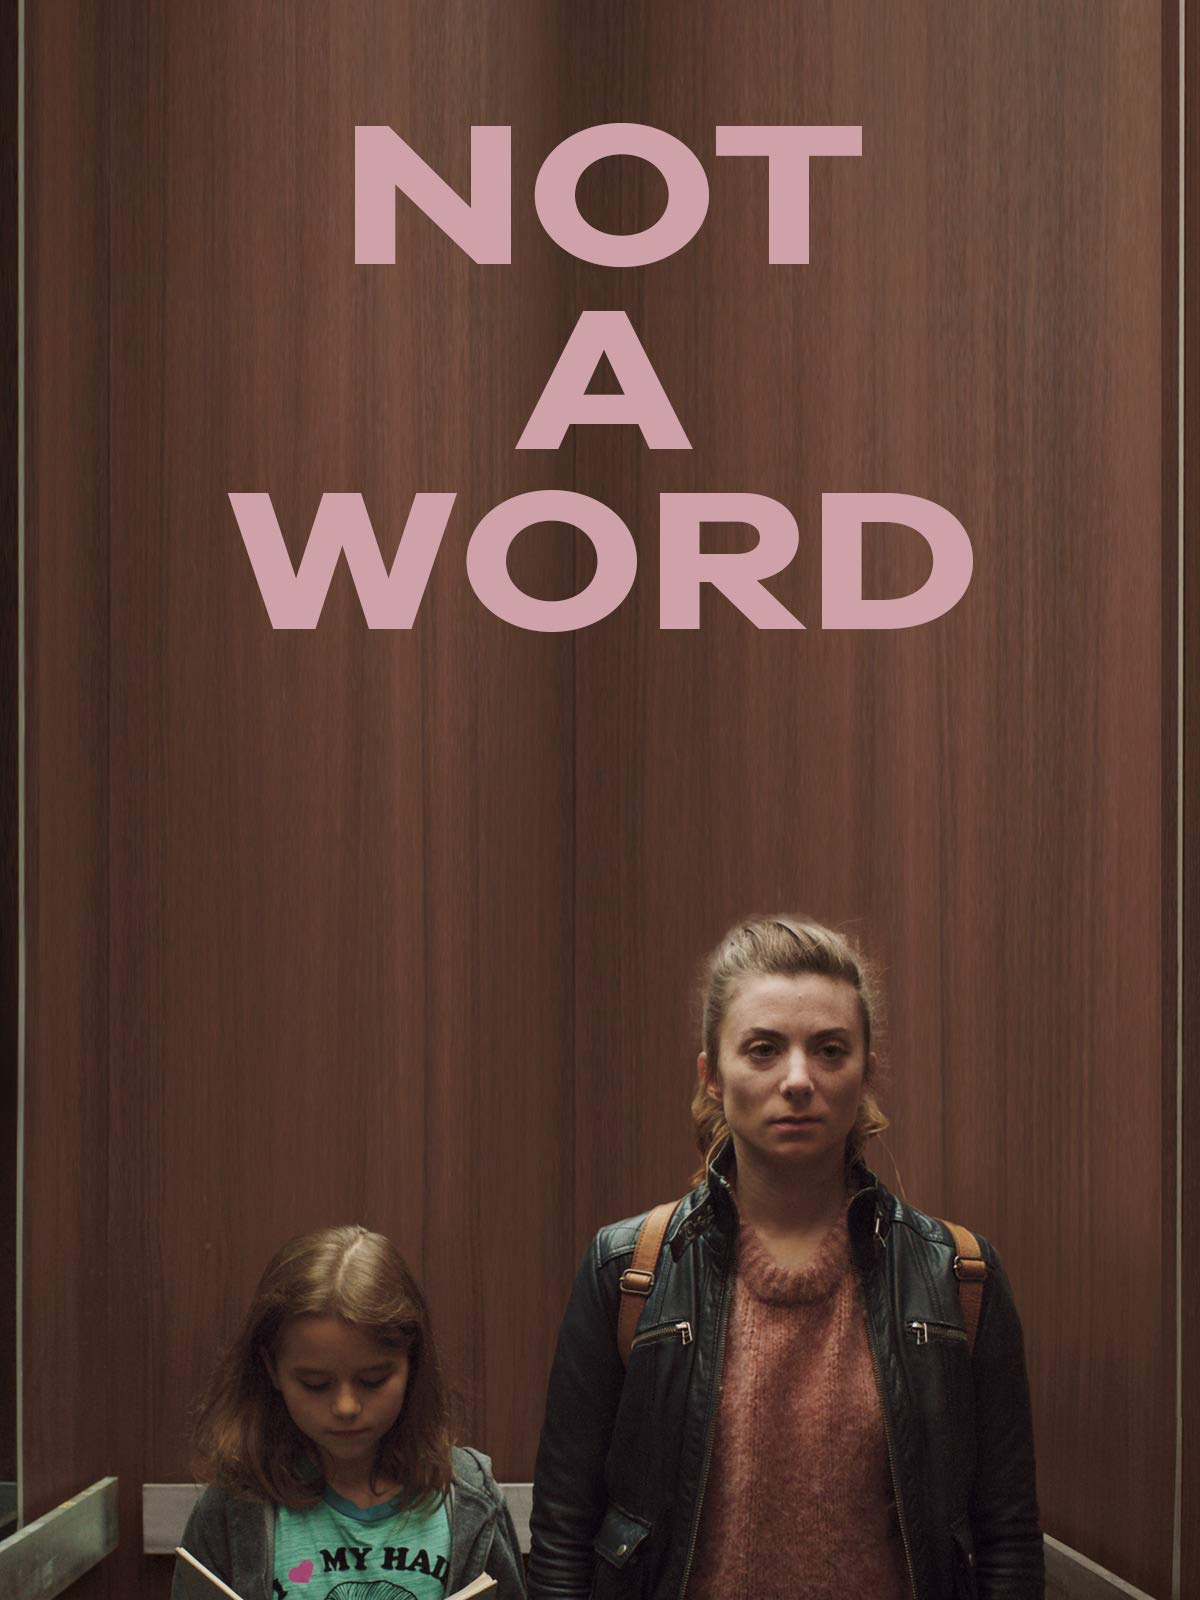 Not a word on Amazon Prime Video UK